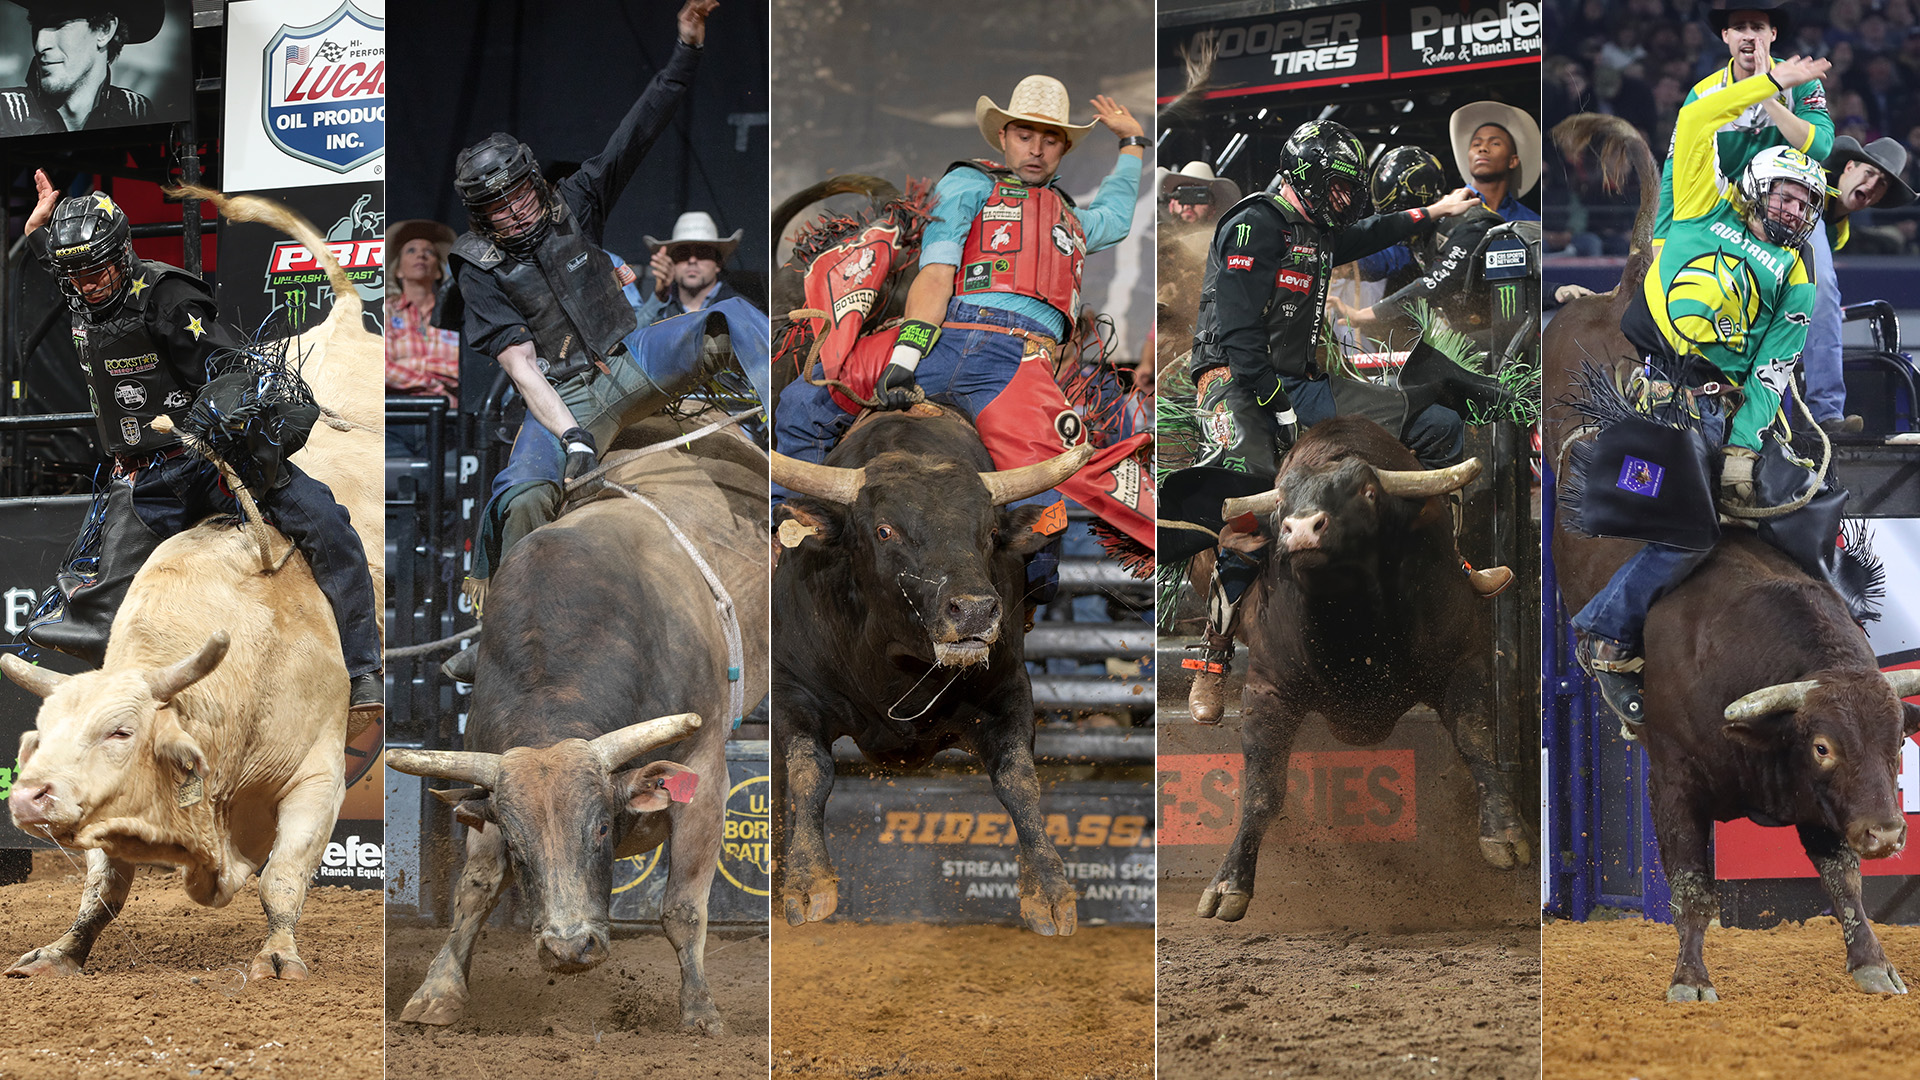 What to watch for: 5 PBR events on the calendar this weekend